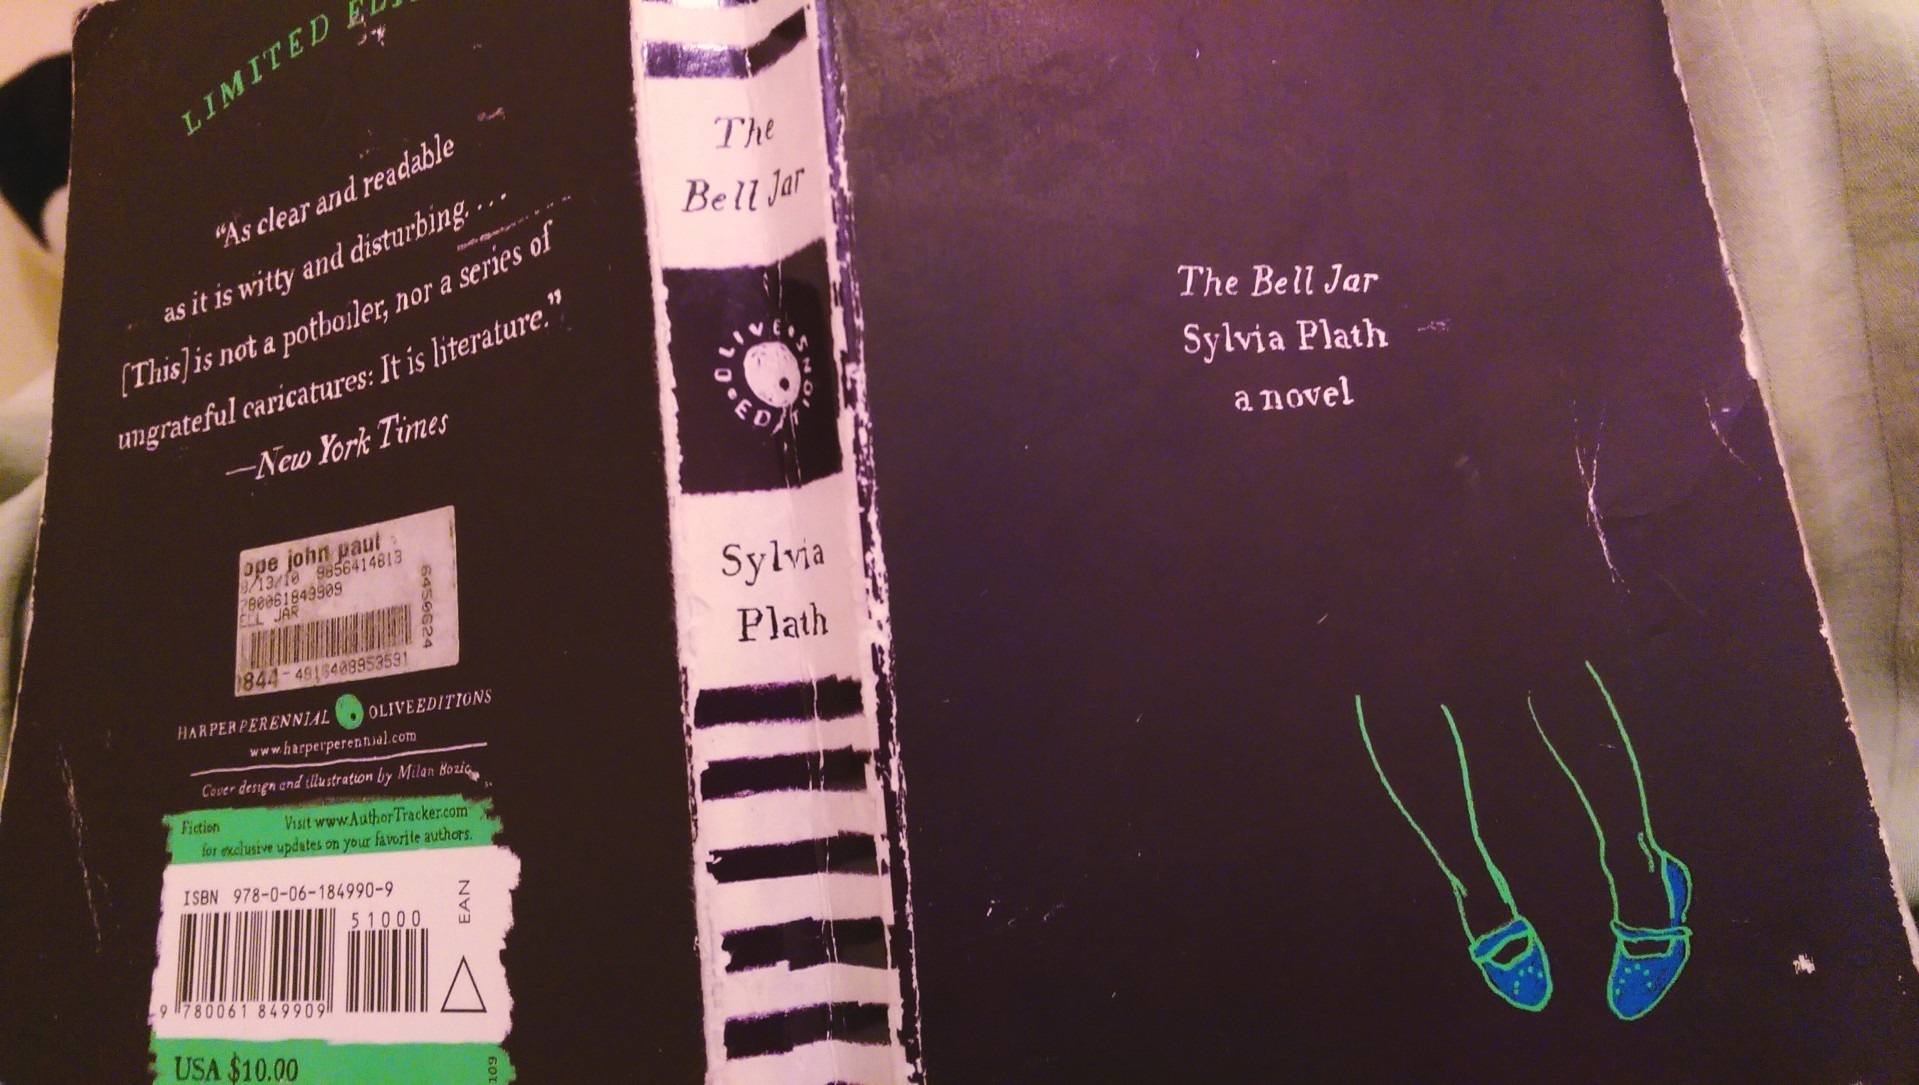 differences style writing between bell jar sylvia plath Discusses the connotation of the word 'bell jar' in the novel 'the bell jar,' by sylvia plath association between sylvia plath and writer oliver wendell holmes difference between their writing styles source for the title of plath's novel description of the novel's character esther.